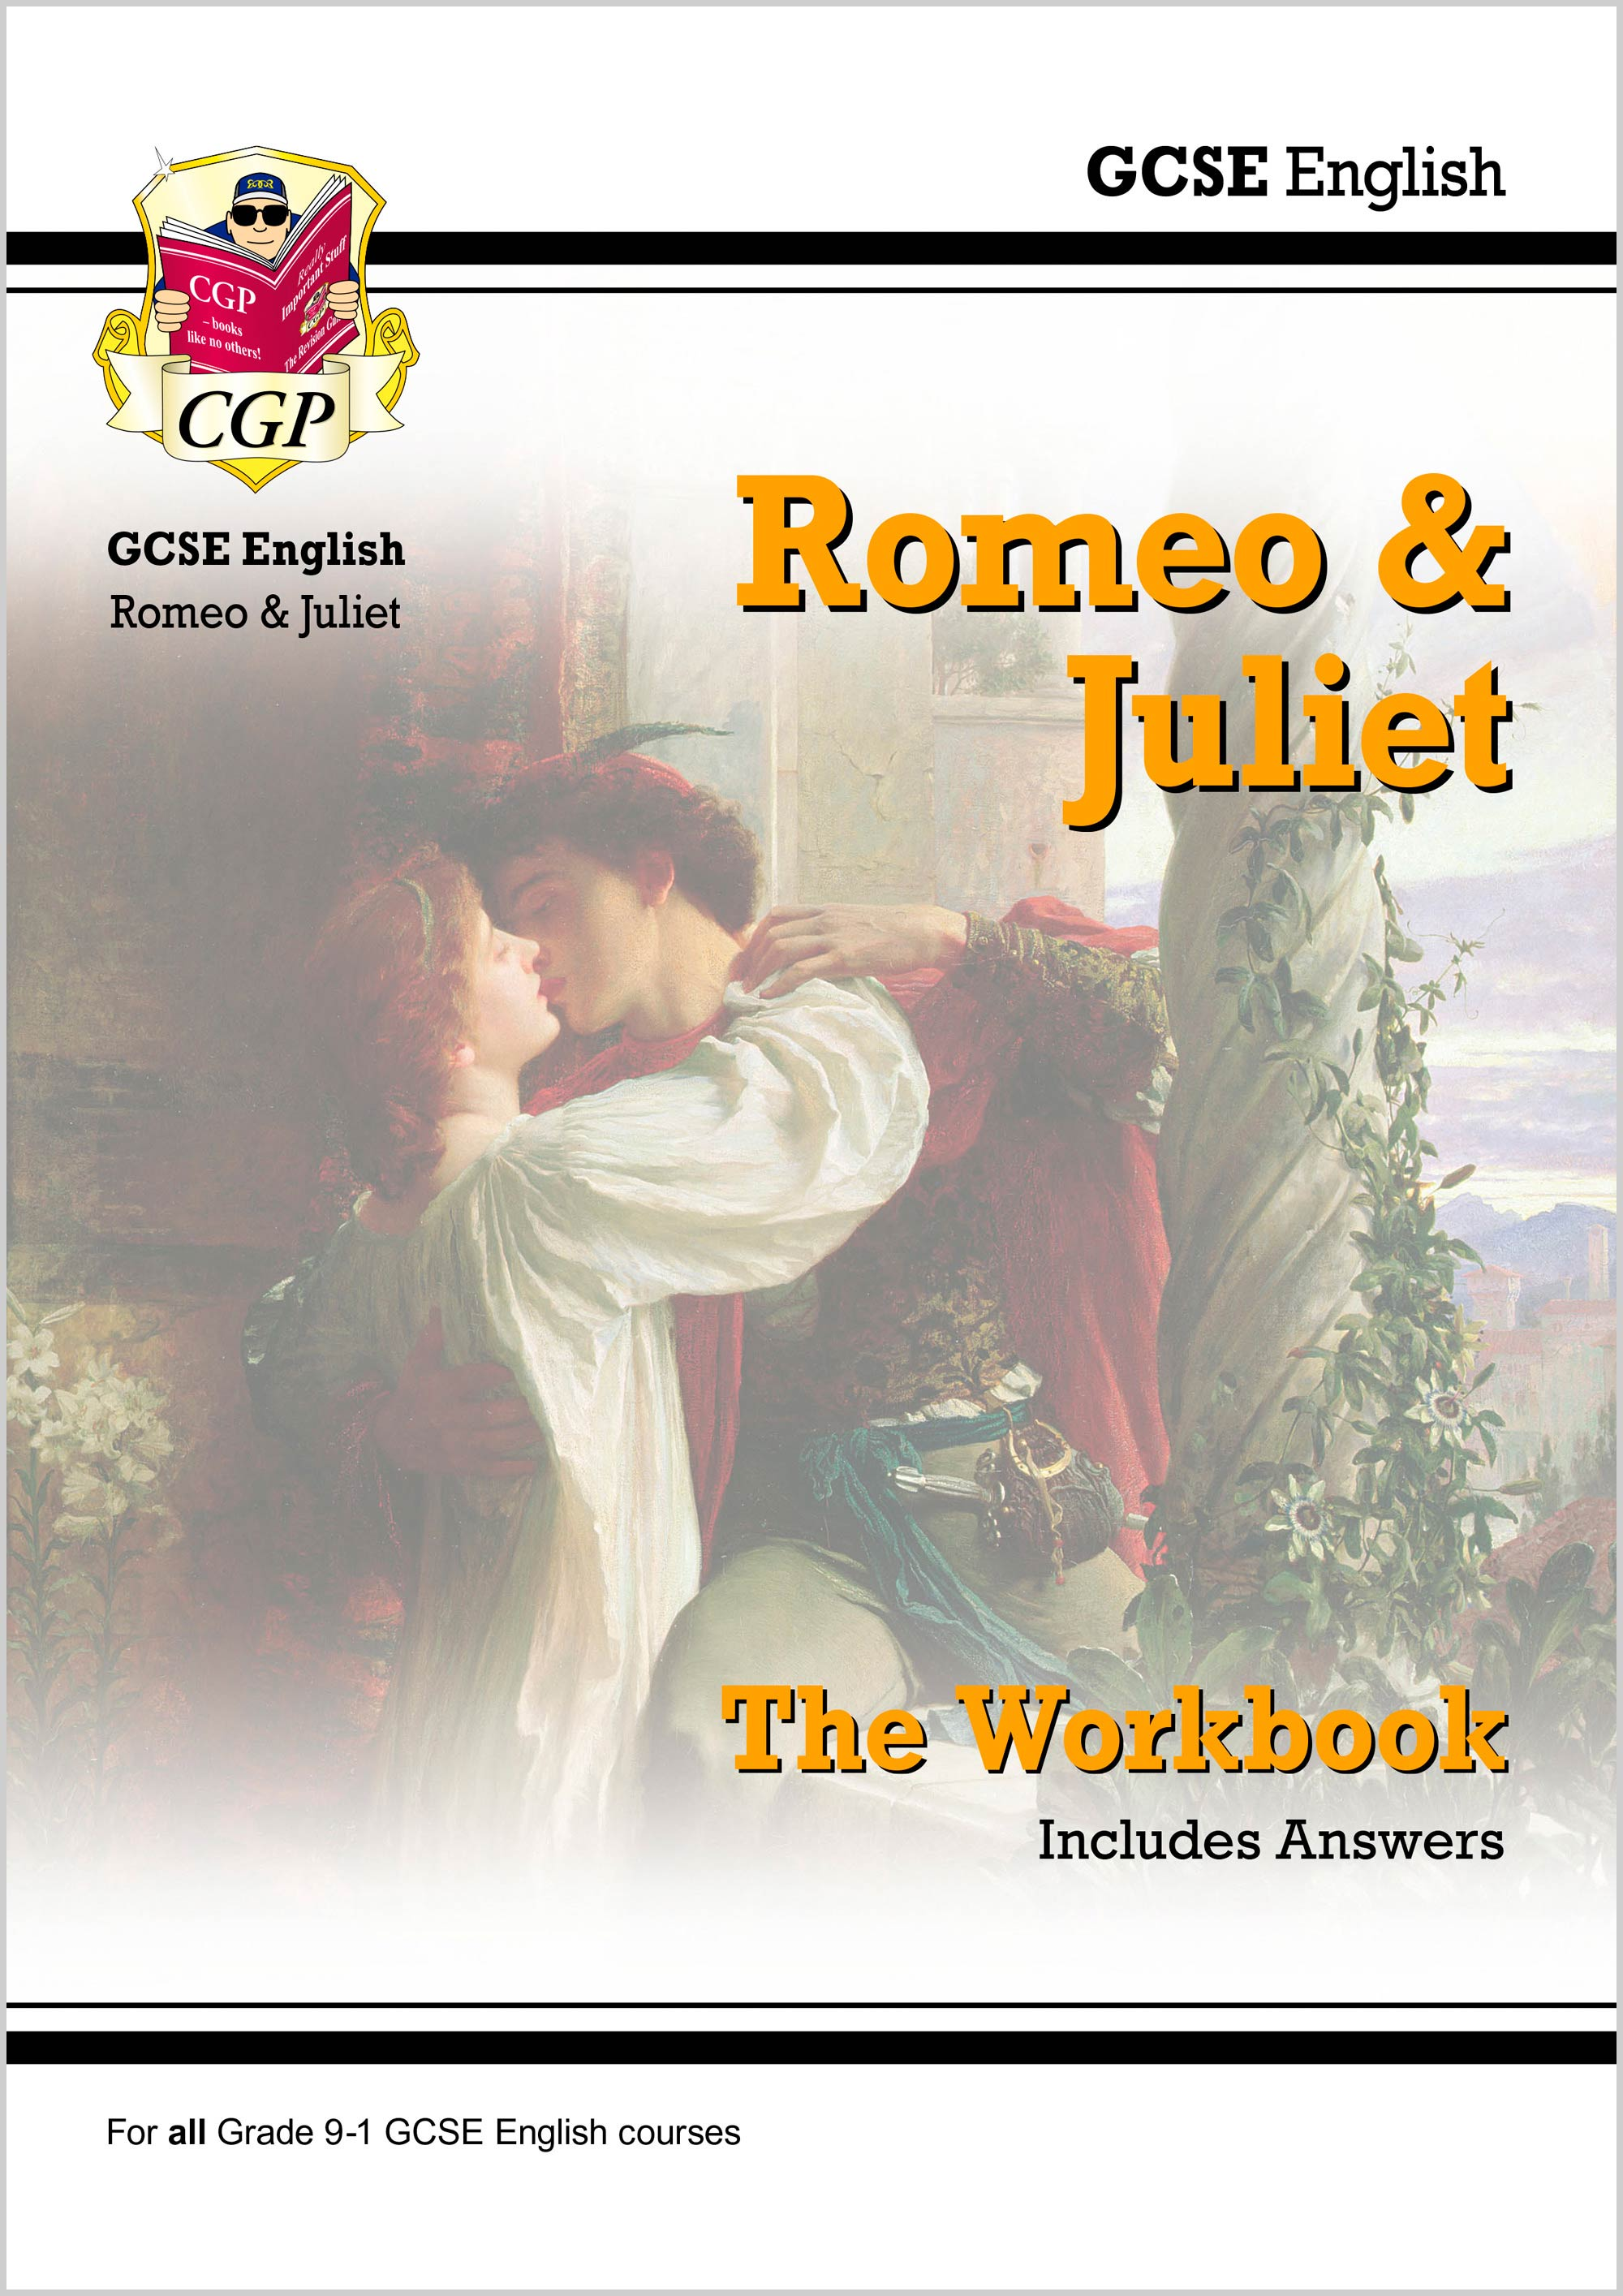 ETWR41DK - New Grade 9-1 GCSE English Shakespeare - Romeo & Juliet Workbook (includes Answers)